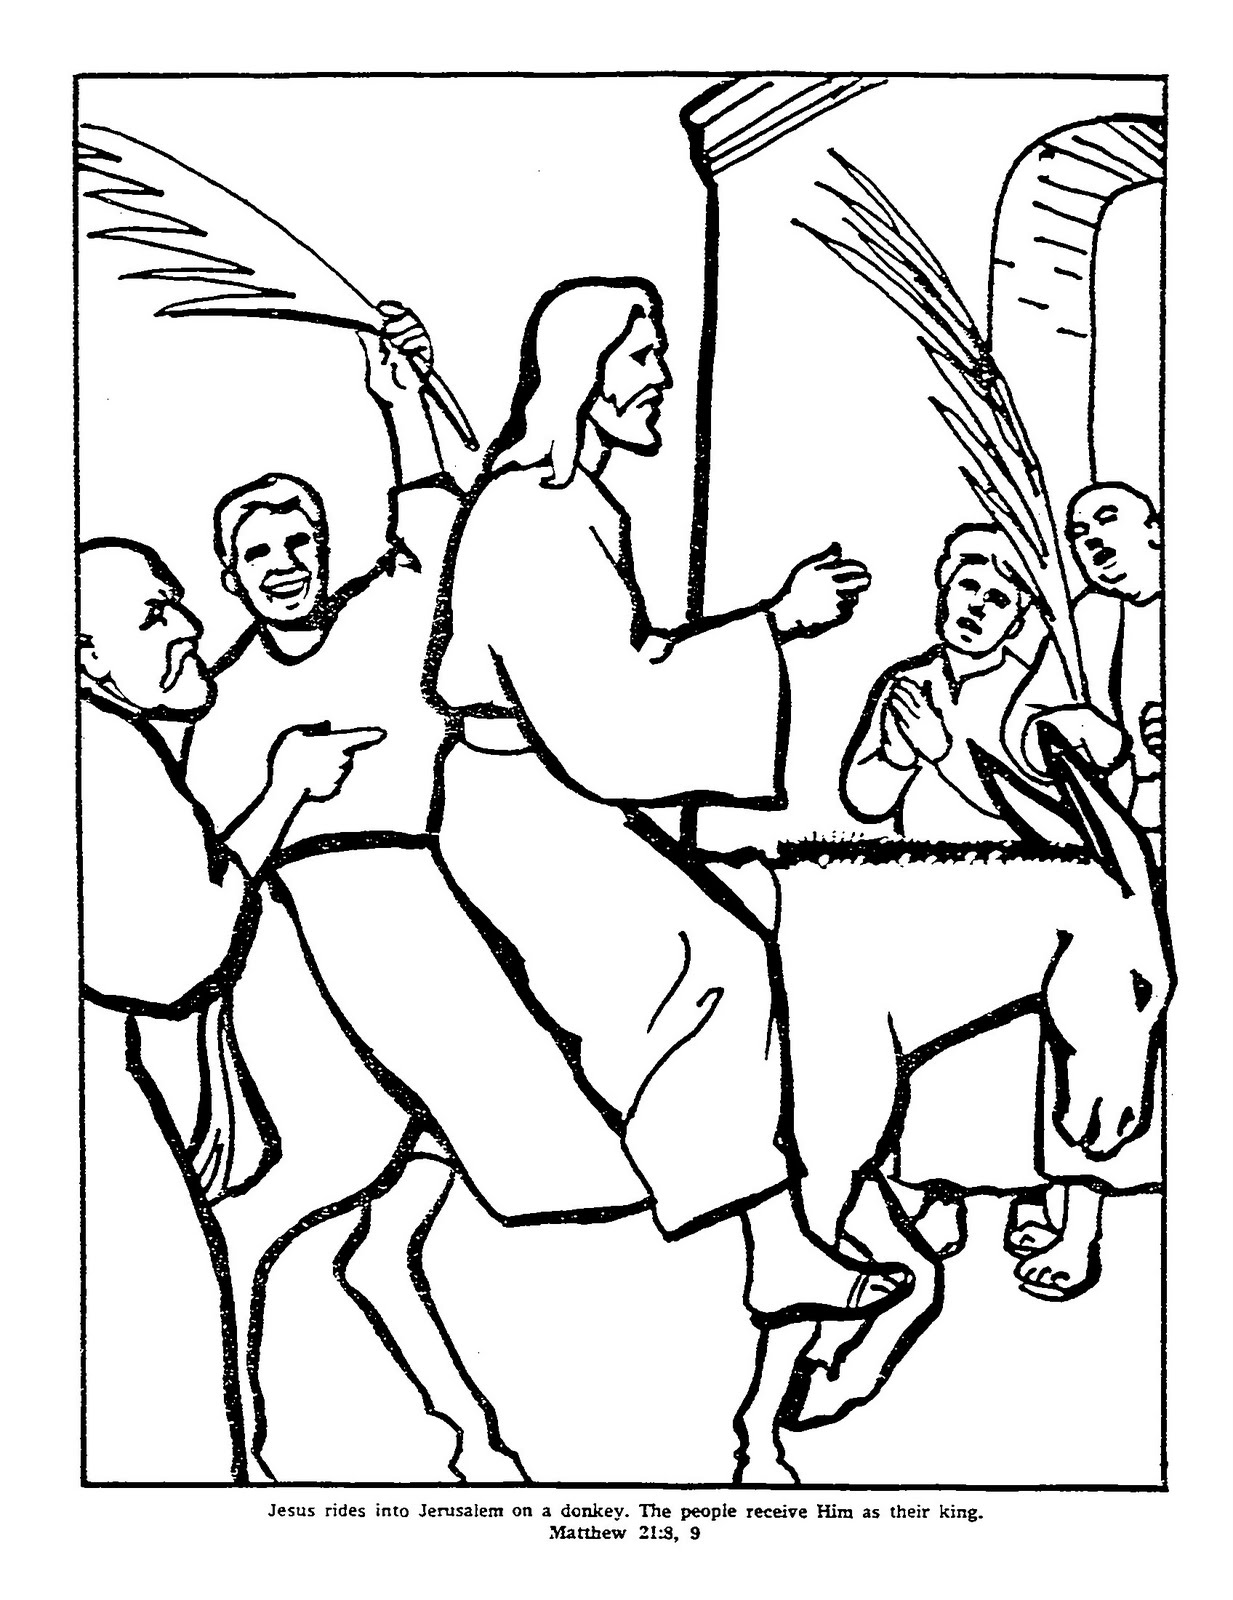 Free coloring pages for palm sunday - Men Shouting Hosanna As Jesus Riding Donkey By Entering Into Jerusalem From Mount Of Olives Coloring